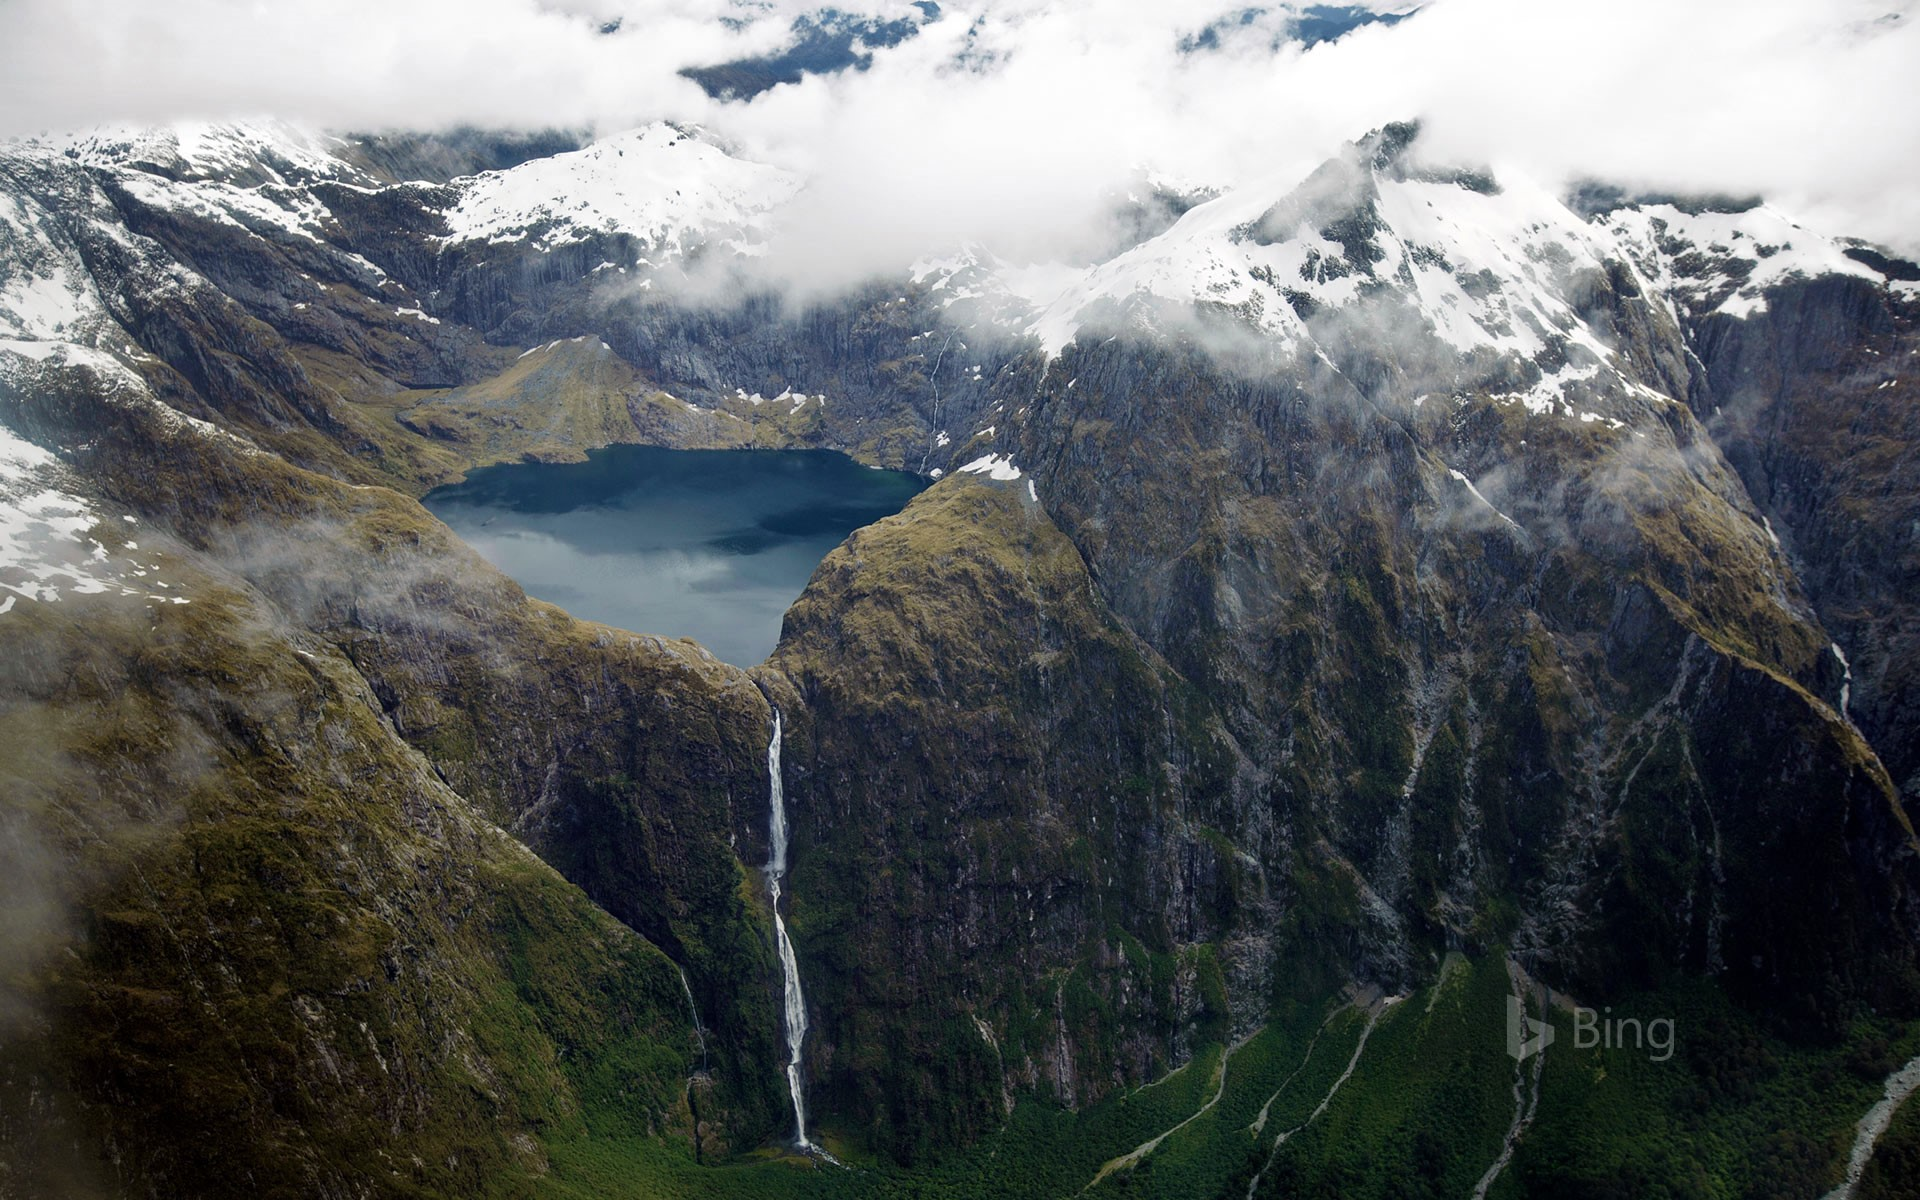 Sutherland Falls and Lake Quill in New Zealand